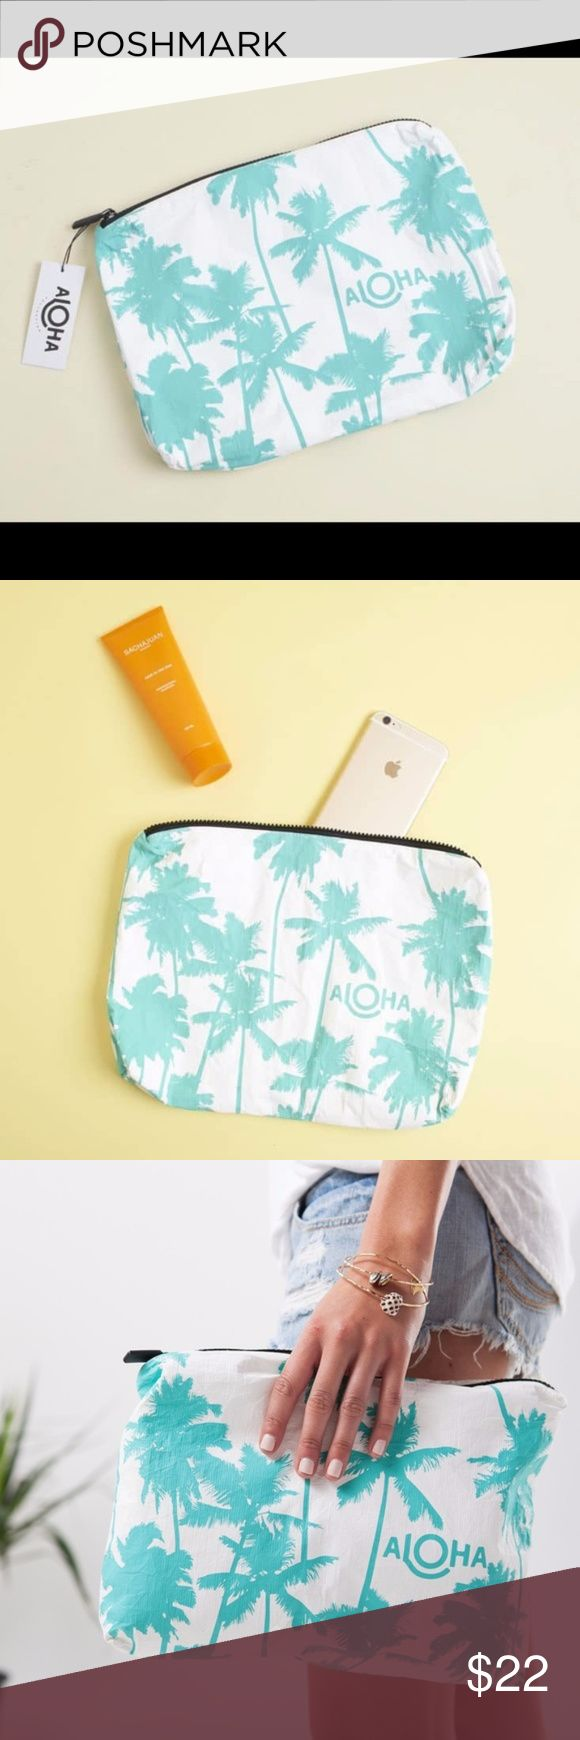 "Aloha Wet Dry Bag Brand new in packaging. Super cute! I live in sunny Seattle. I know someone else would be able to enjoy this gem more than I will. From Popsugar box June 2017. Take a little Kauai with you on your next adventure! This print was inspired by Kauai's coco palms and the famous Coco Palms Resort. This pouch is perfect to use as a beach clutch. Stow your sunscreen, sarong, and bikini, or pack toiletries for your next trip!  Mid-size pouch measures: 11.5"" across x 2"" wide x 8.5""…"